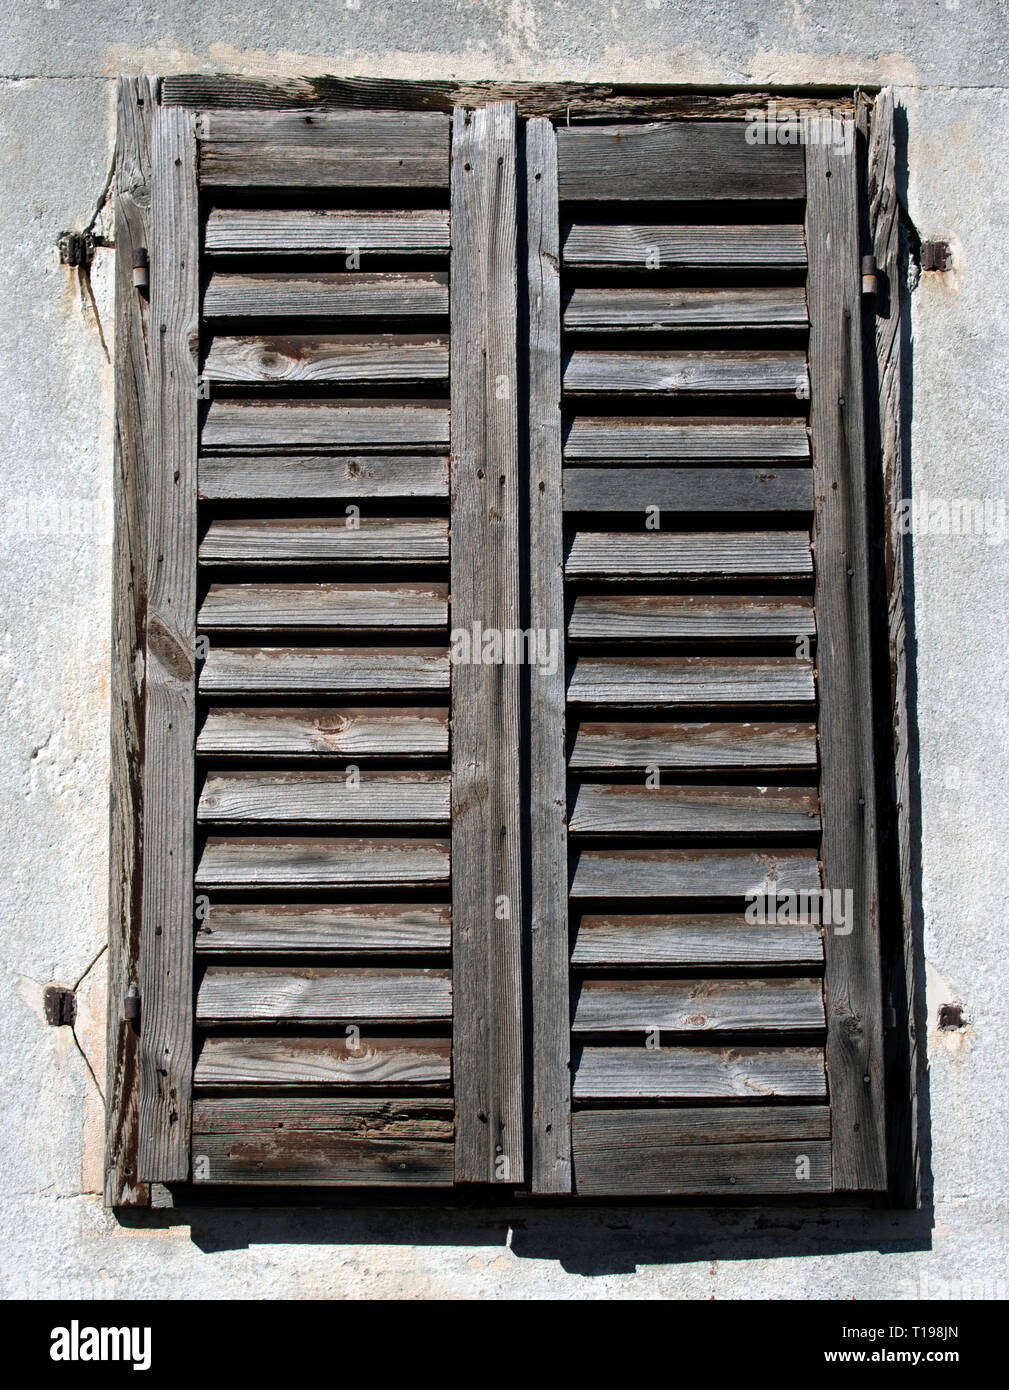 Old Rustic Wooden Blinds On A Window Frame Stock Photo Alamy